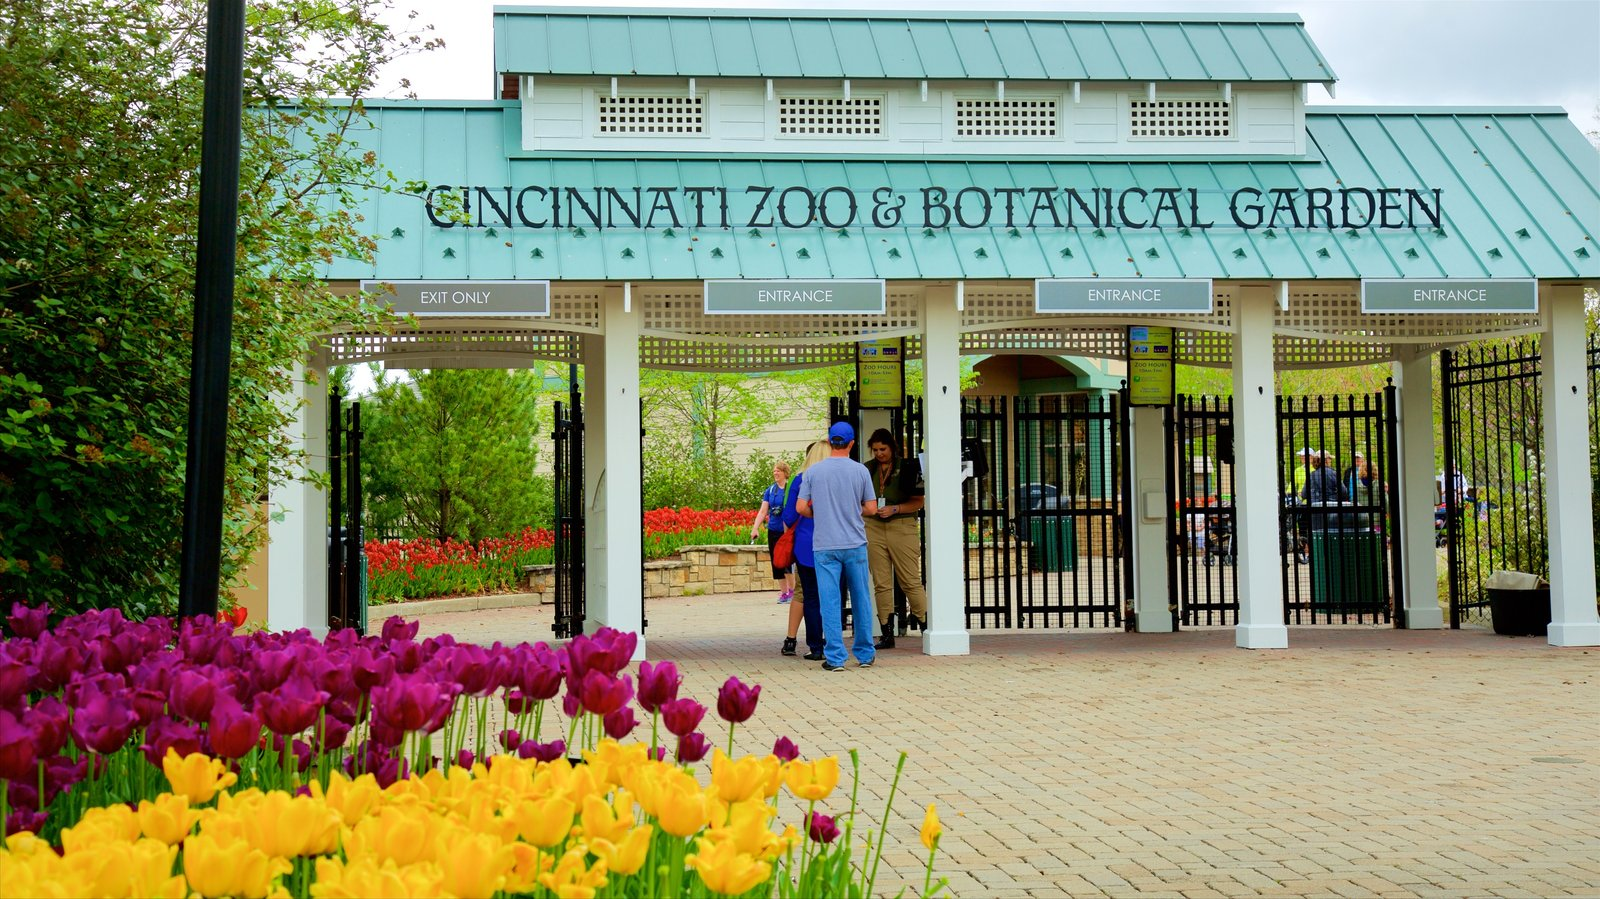 nature pictures: view images of cincinnati zoo and botanical garden